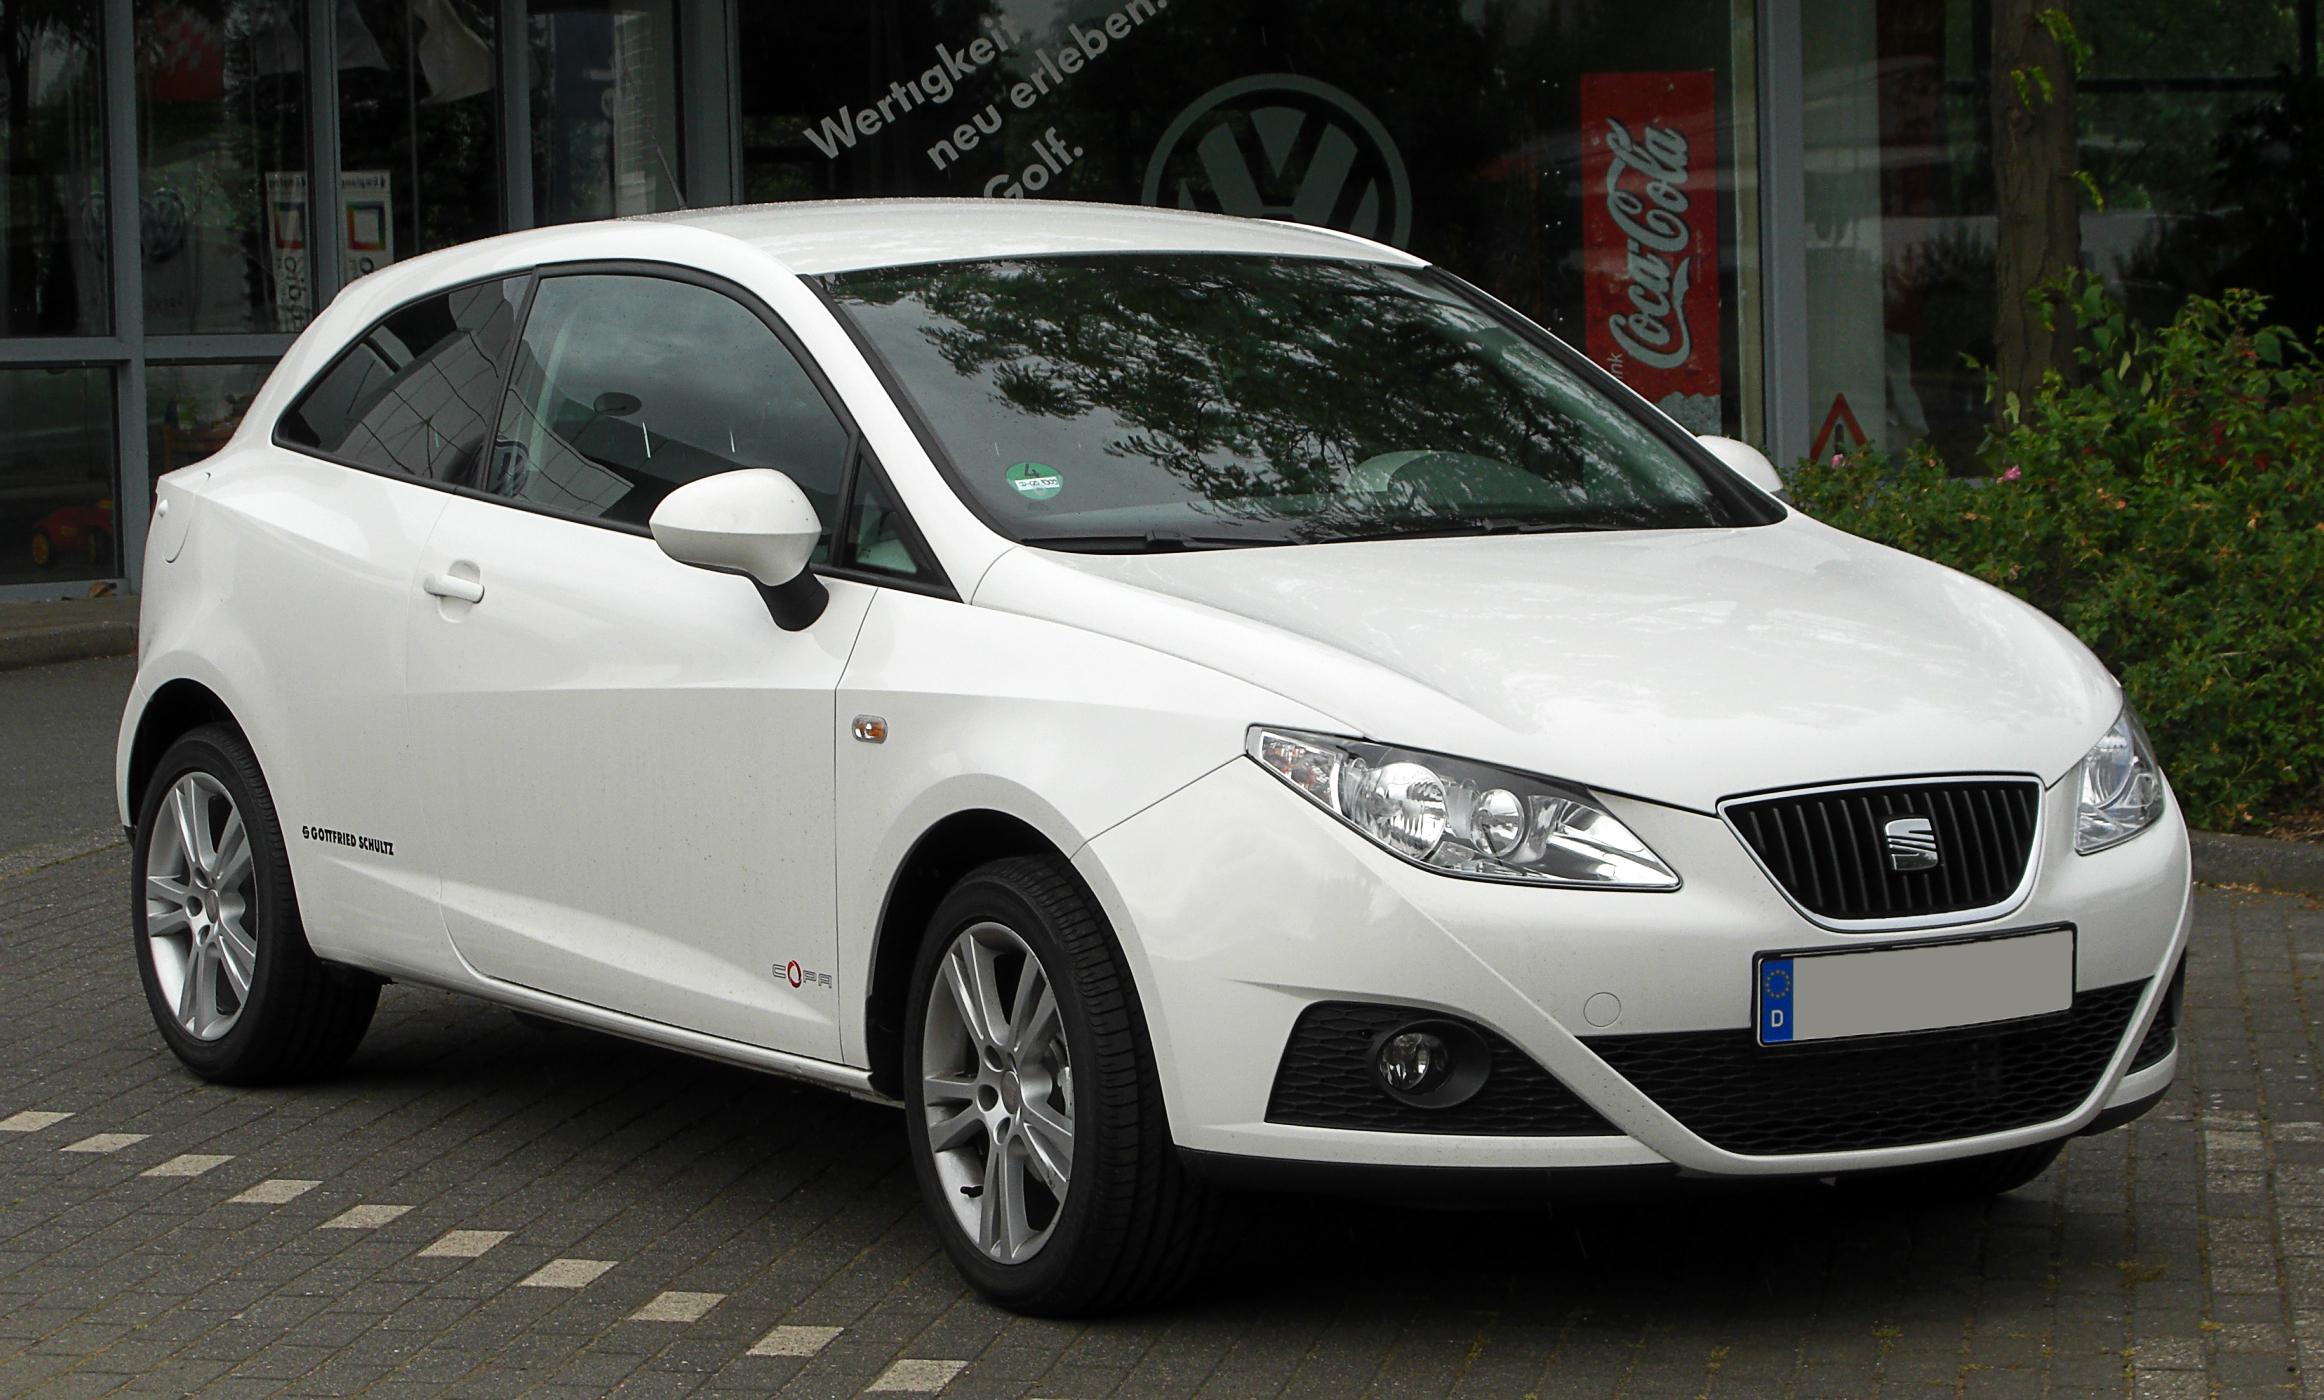 2007 seat ibiza 3 6l1 pictures information and specs auto. Black Bedroom Furniture Sets. Home Design Ideas